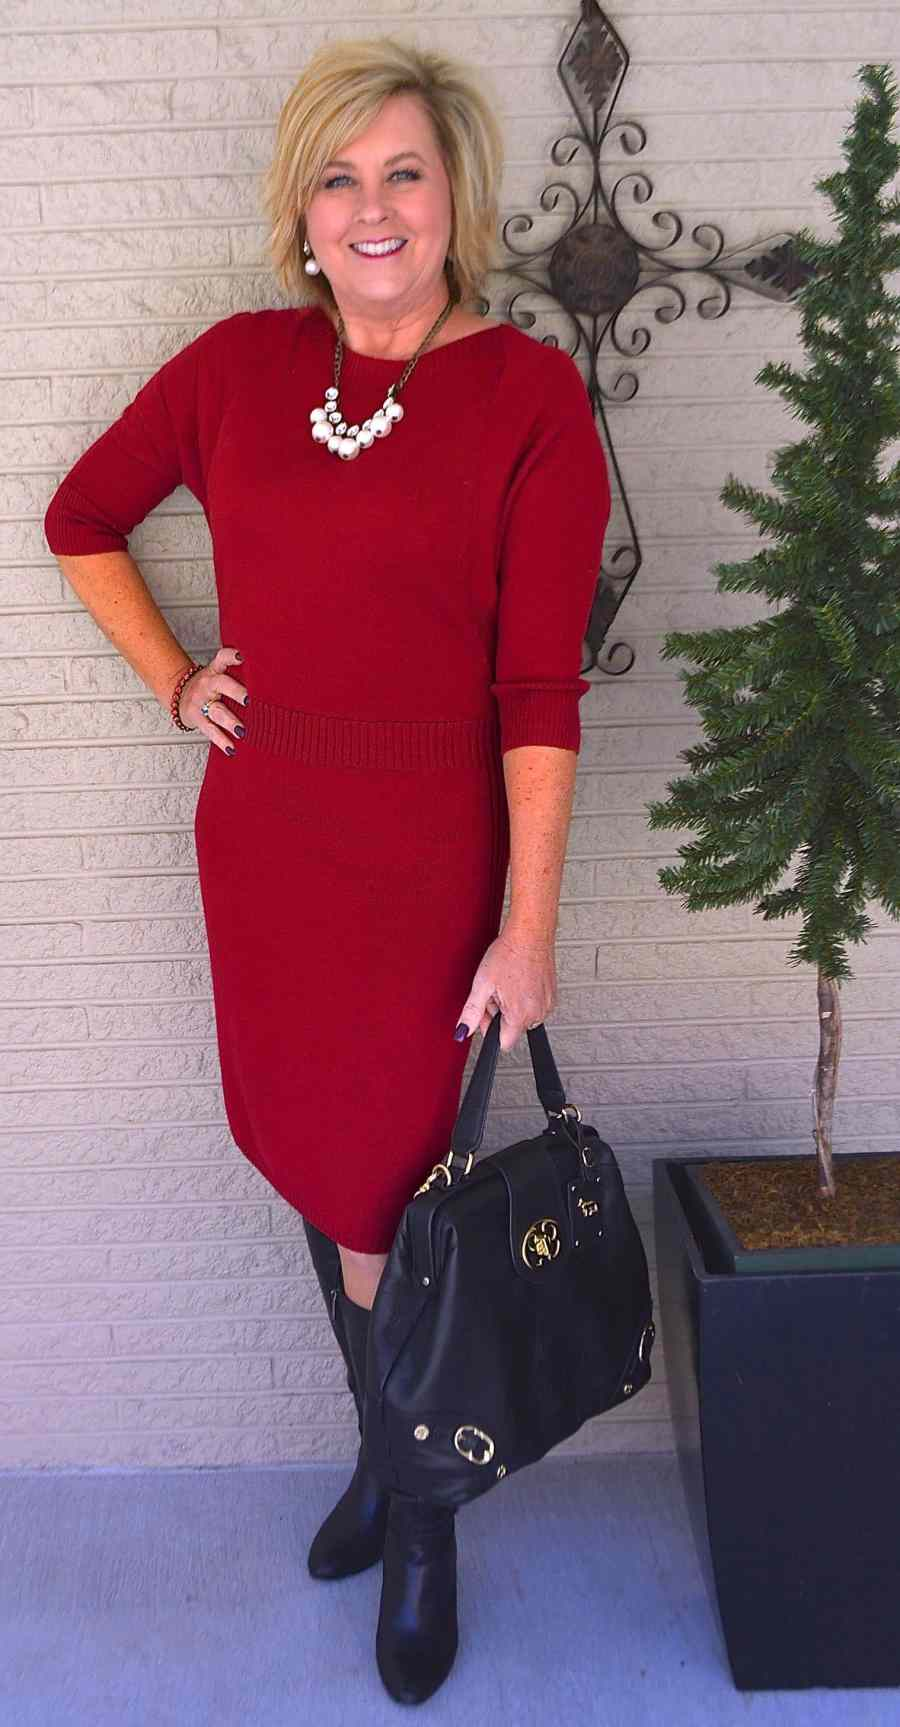 50 IS NOT OLD | LADY IN RED